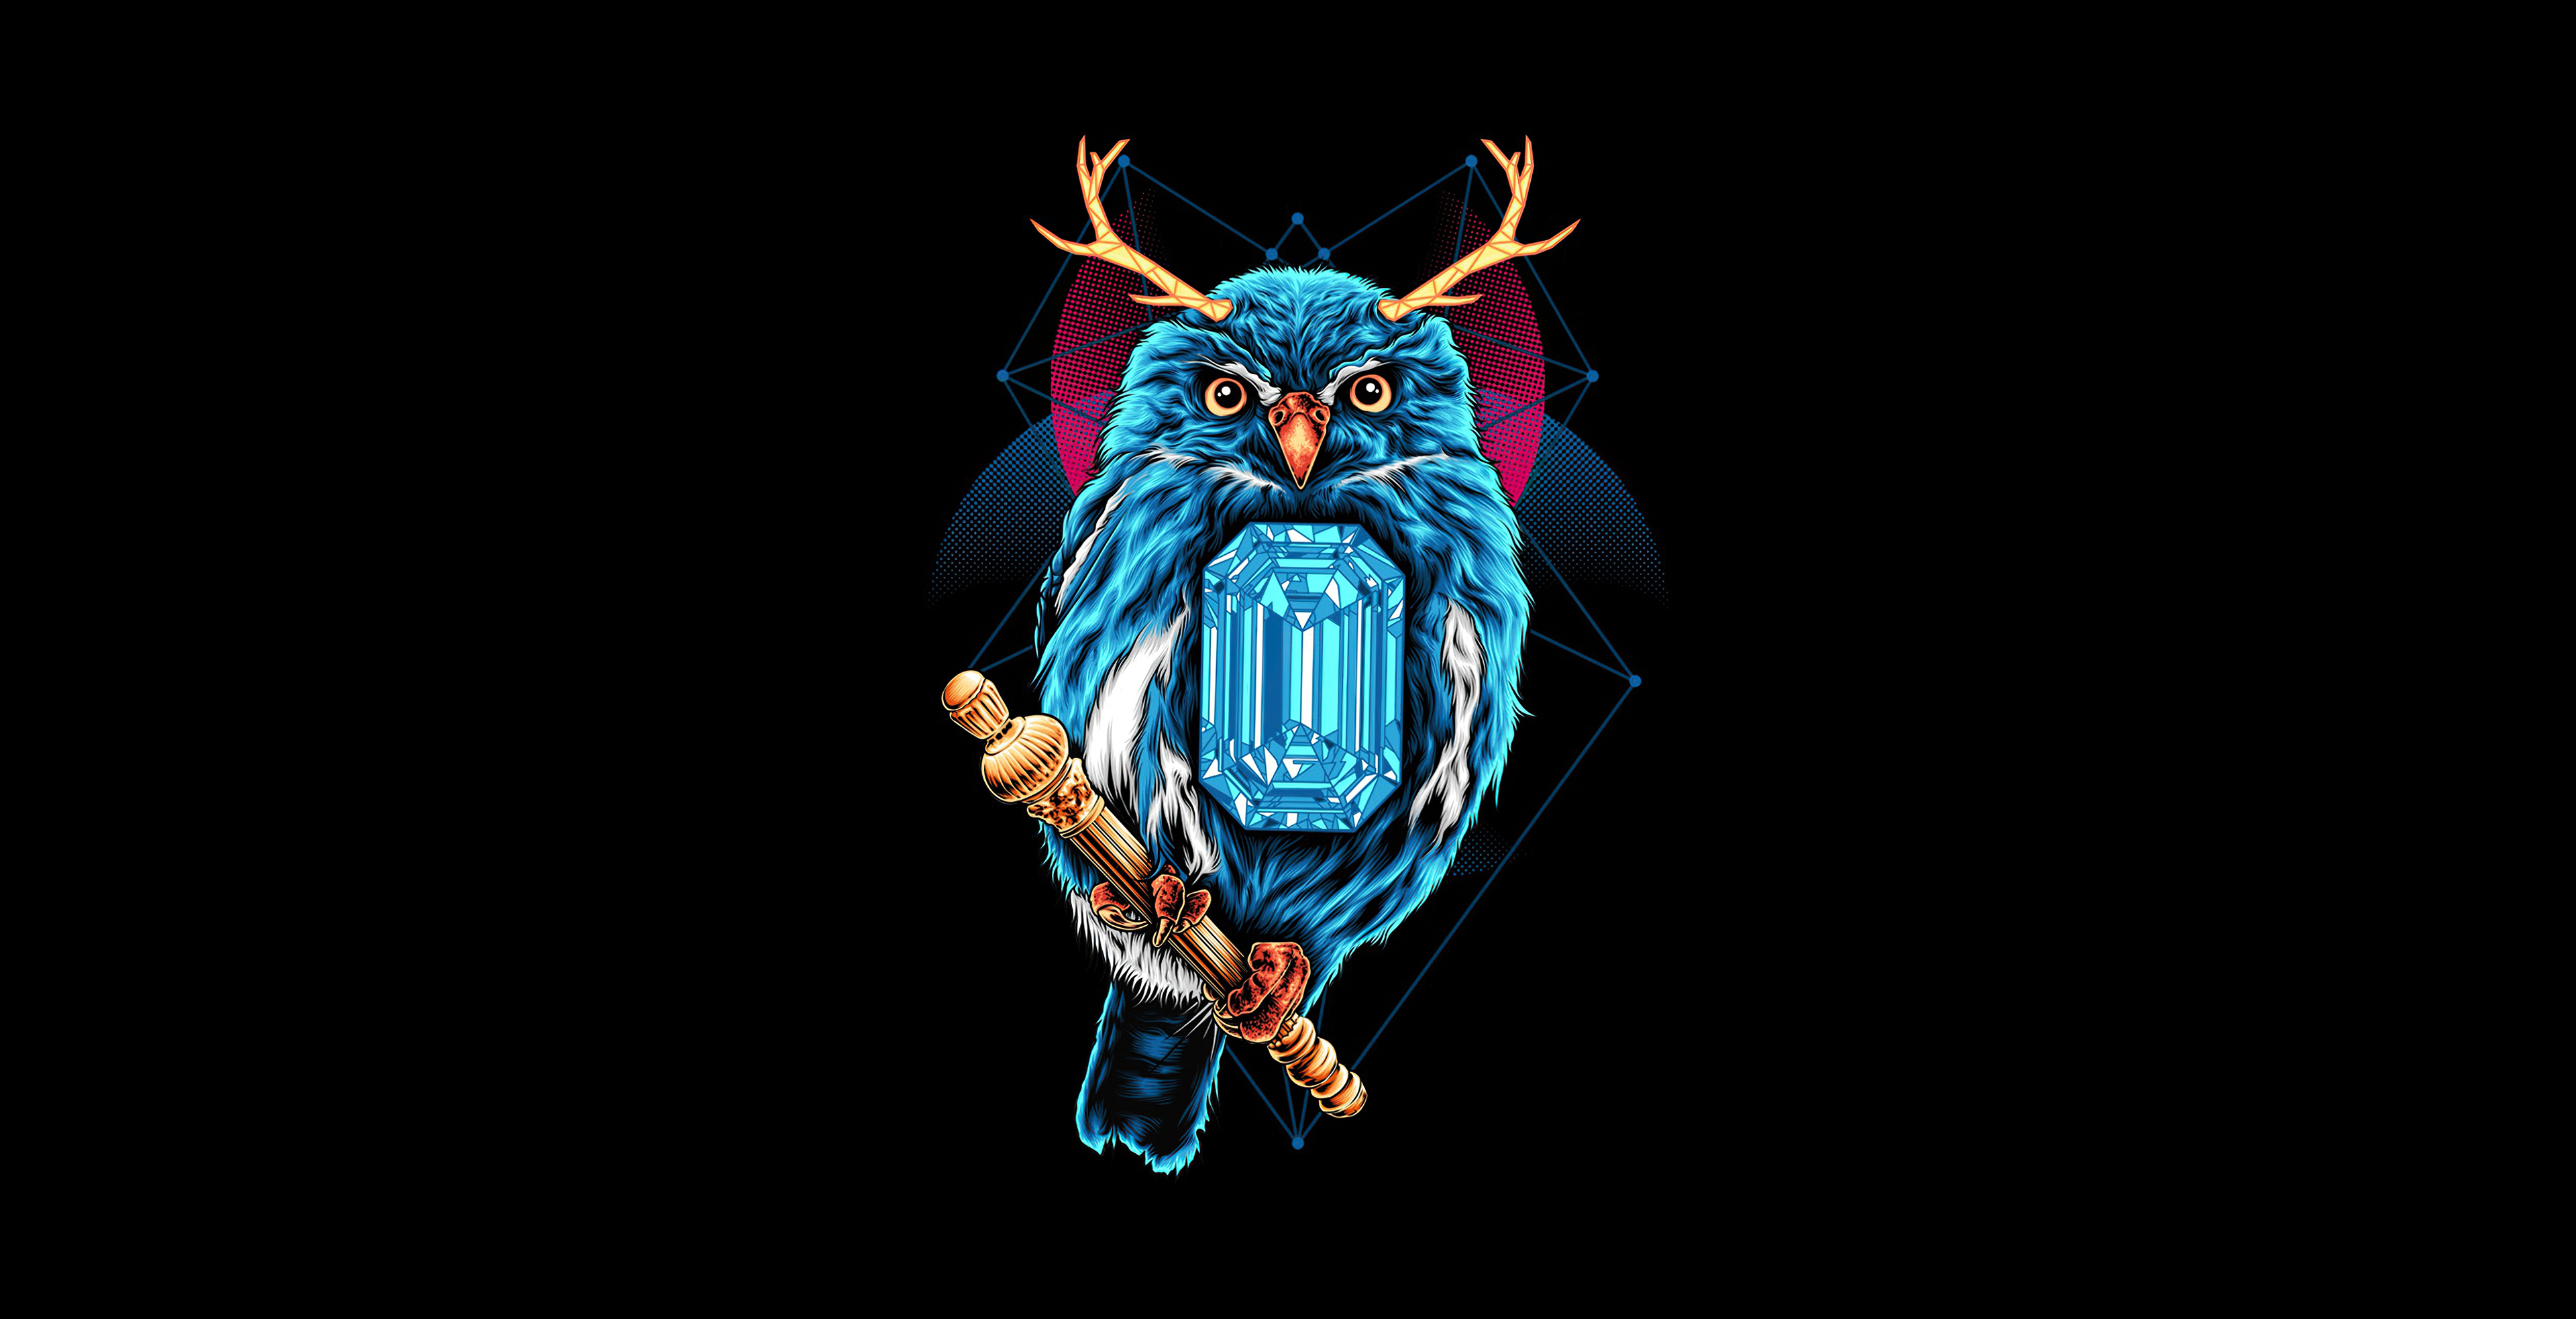 Owl Dark Black 4k Hd Artist 4k Wallpapers Images Backgrounds Photos And Pictures